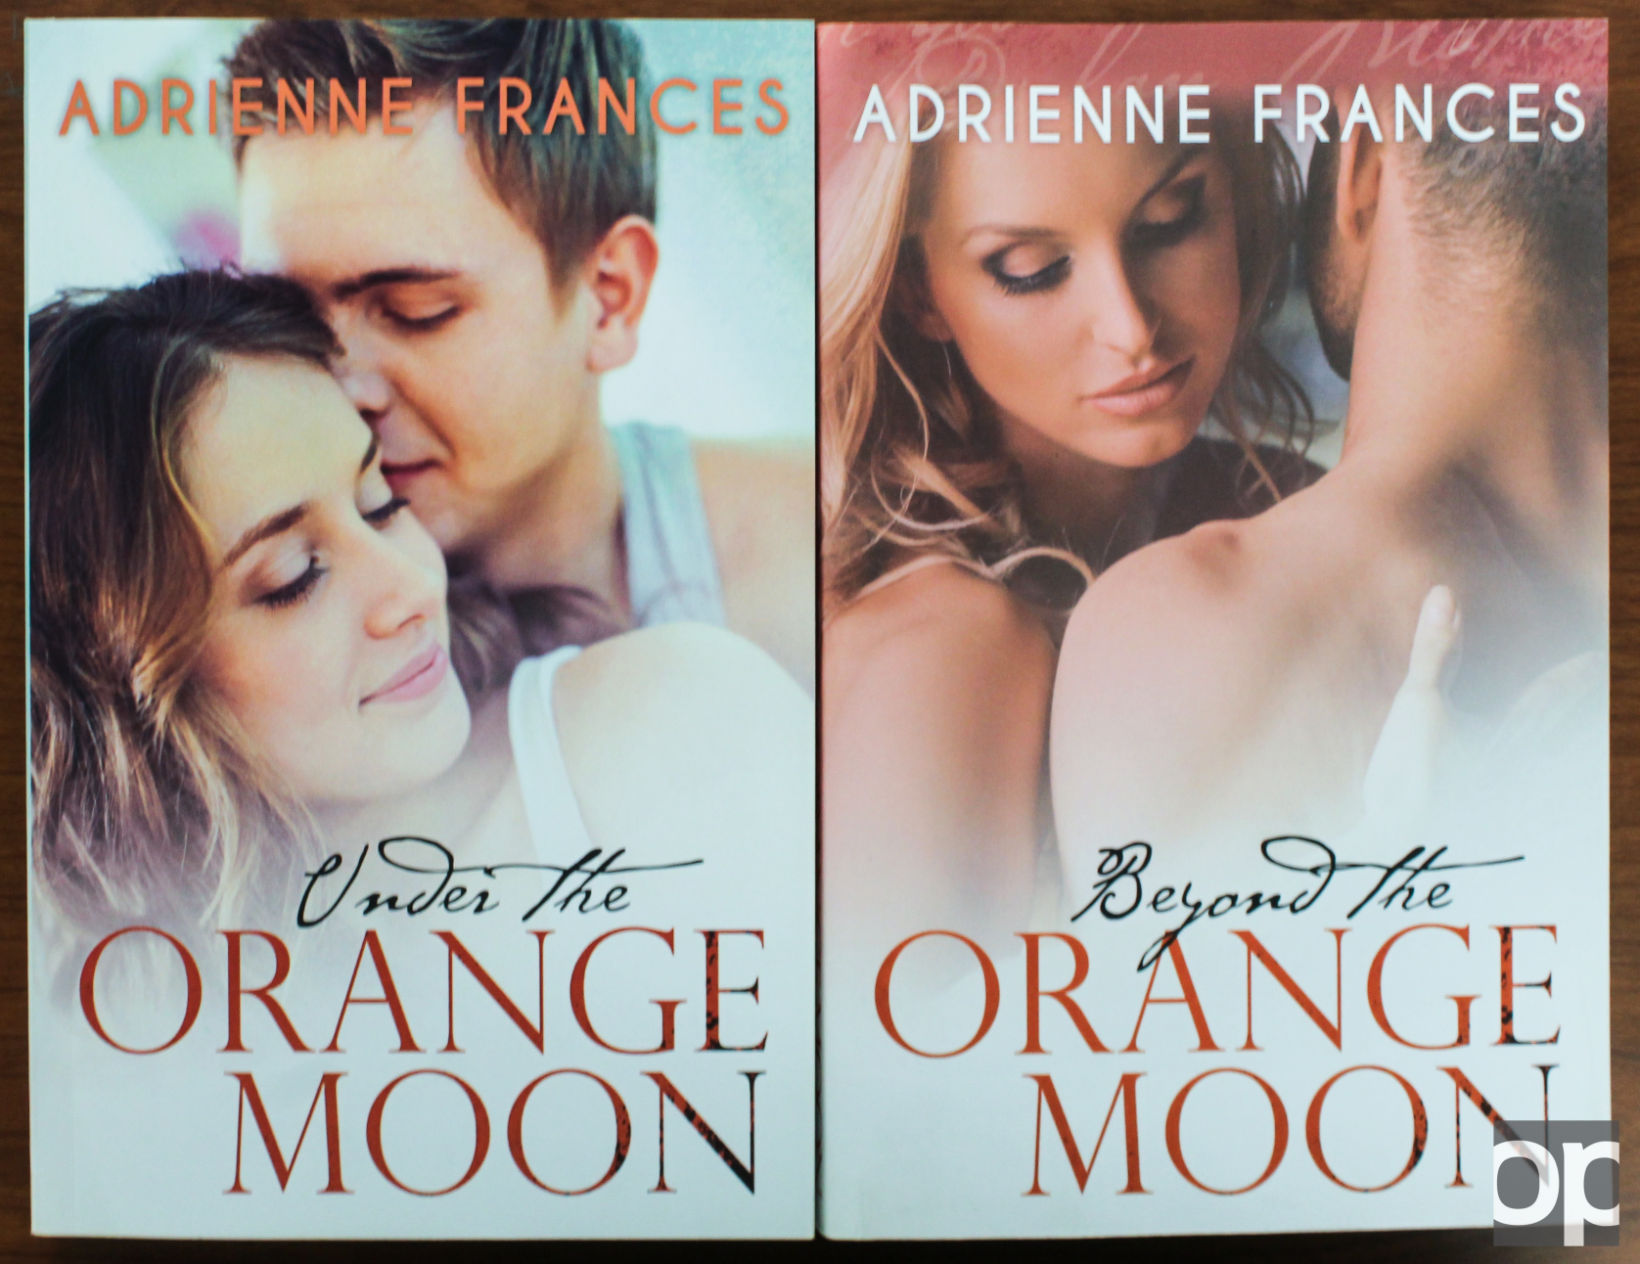 Adrienne Frances has a total of six books planned for the Under the Orange Moon series.